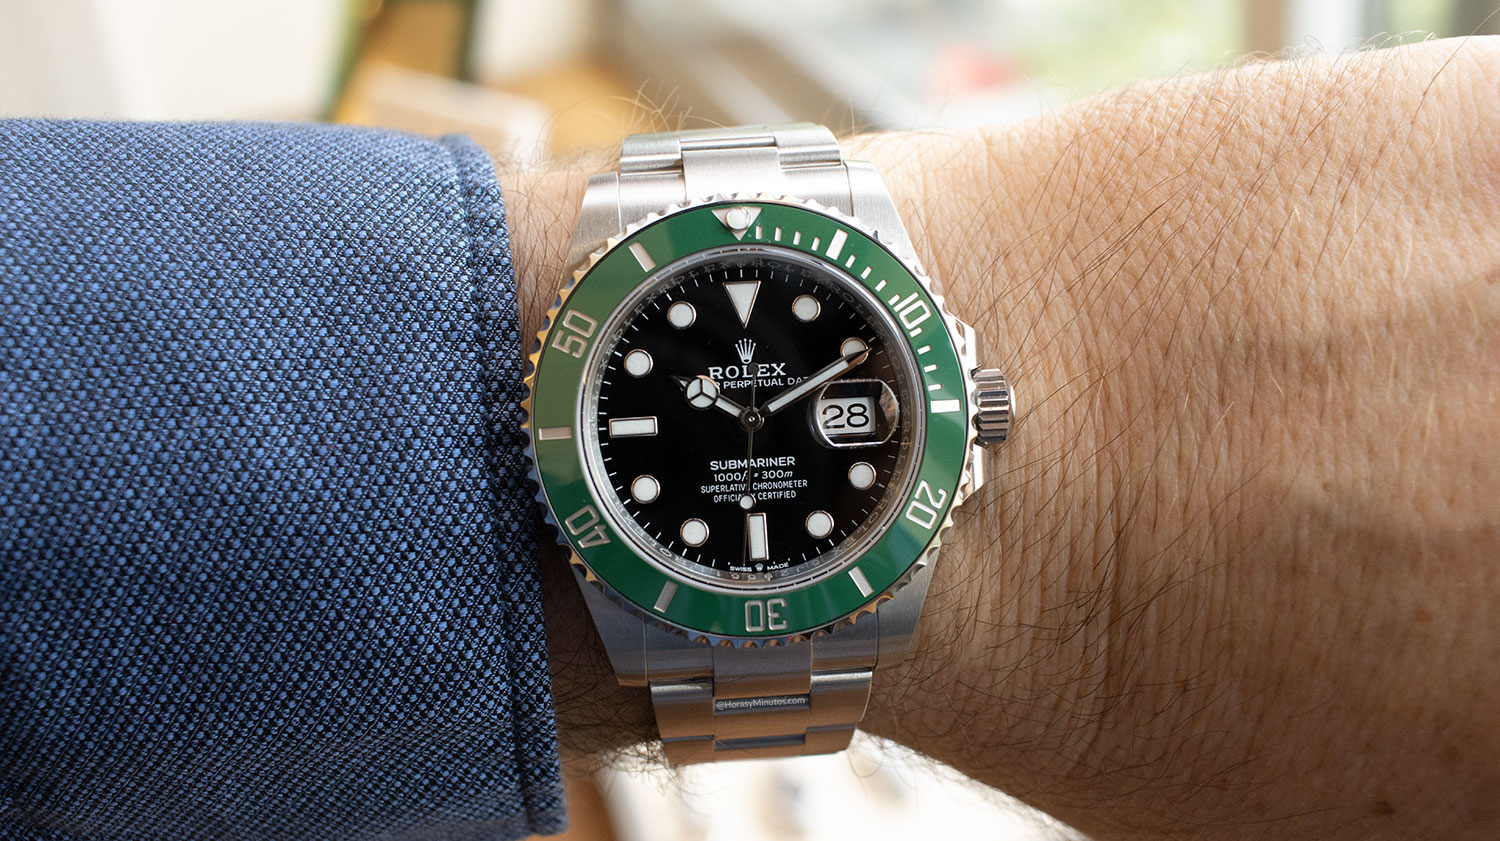 El Rolex Submariner Date 41 mm 2020 126610LV, visto de frente